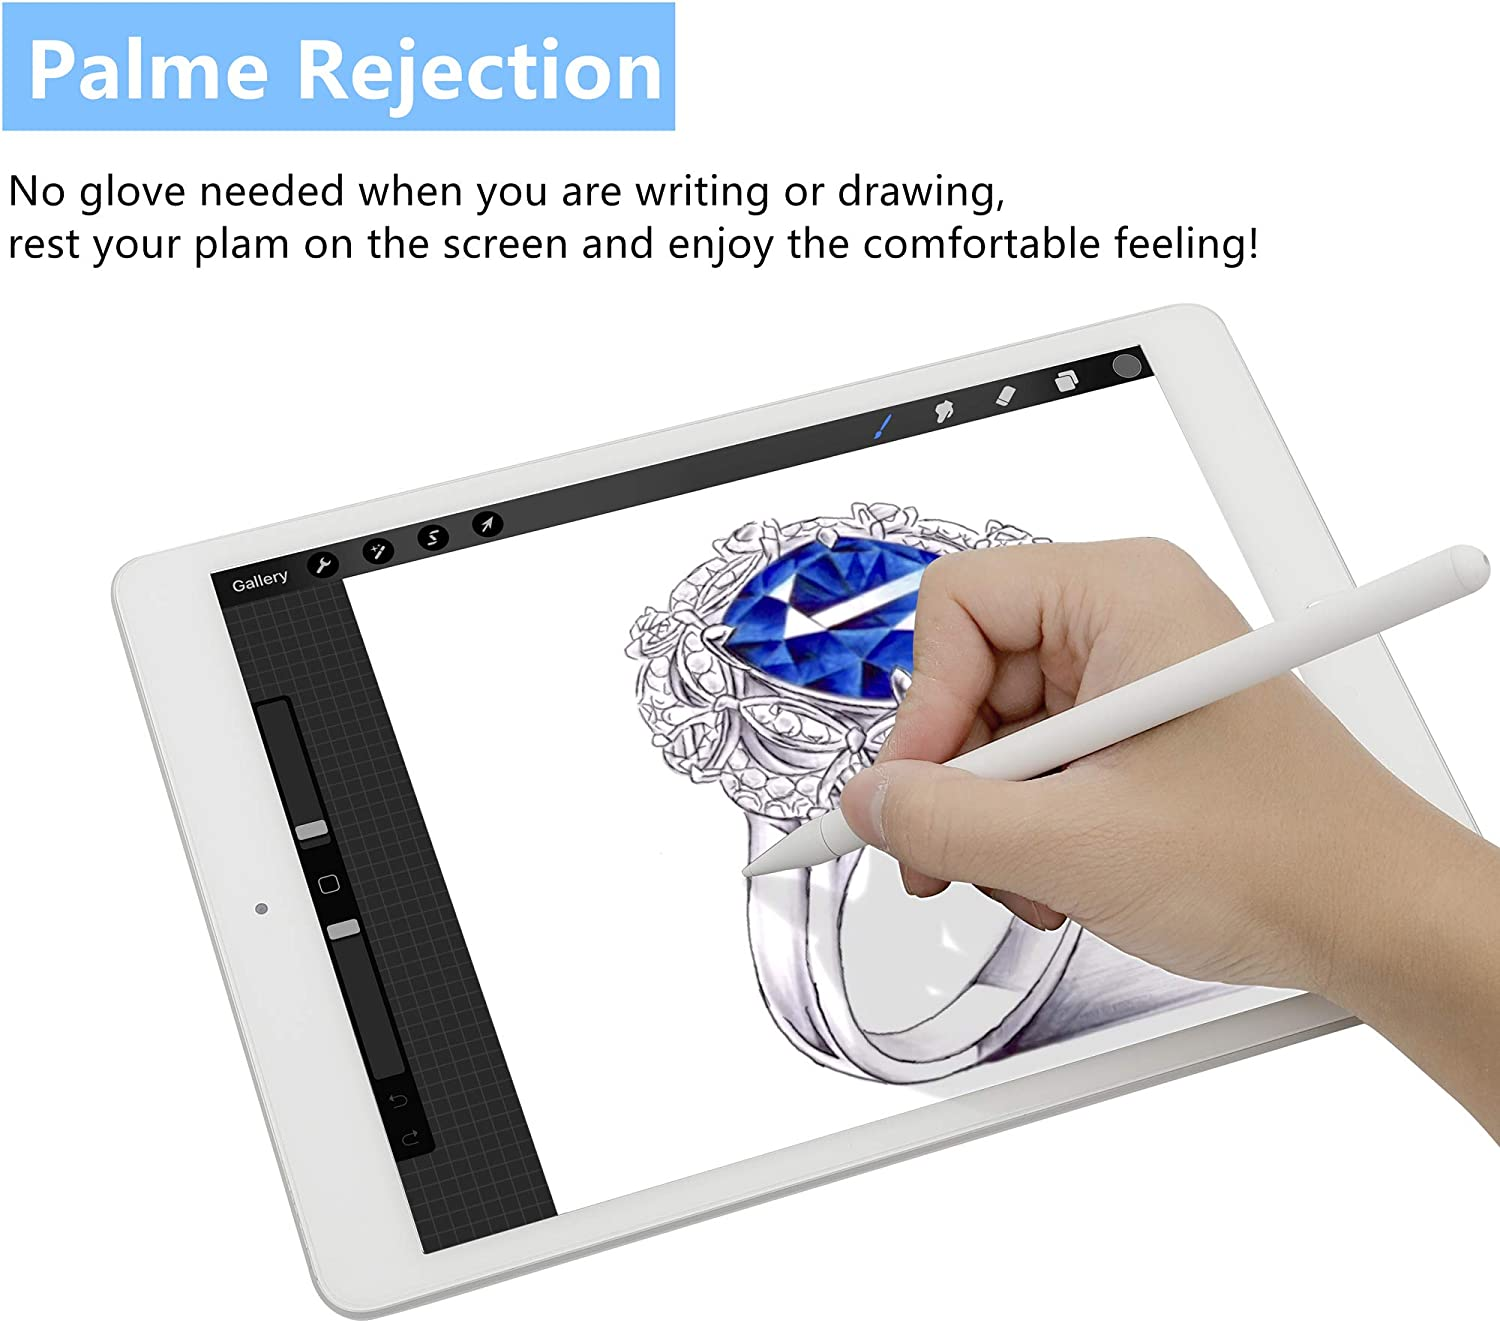 Stylus Pen Compatible with iPad Palm Rejection Active Rechargeable Digital Pencil with Fine Point Magnetic Design Compatible for iPad 6th 7th Gen iPad Pro iPad Air 3rd Gen iPad Mini 5th Gen Black